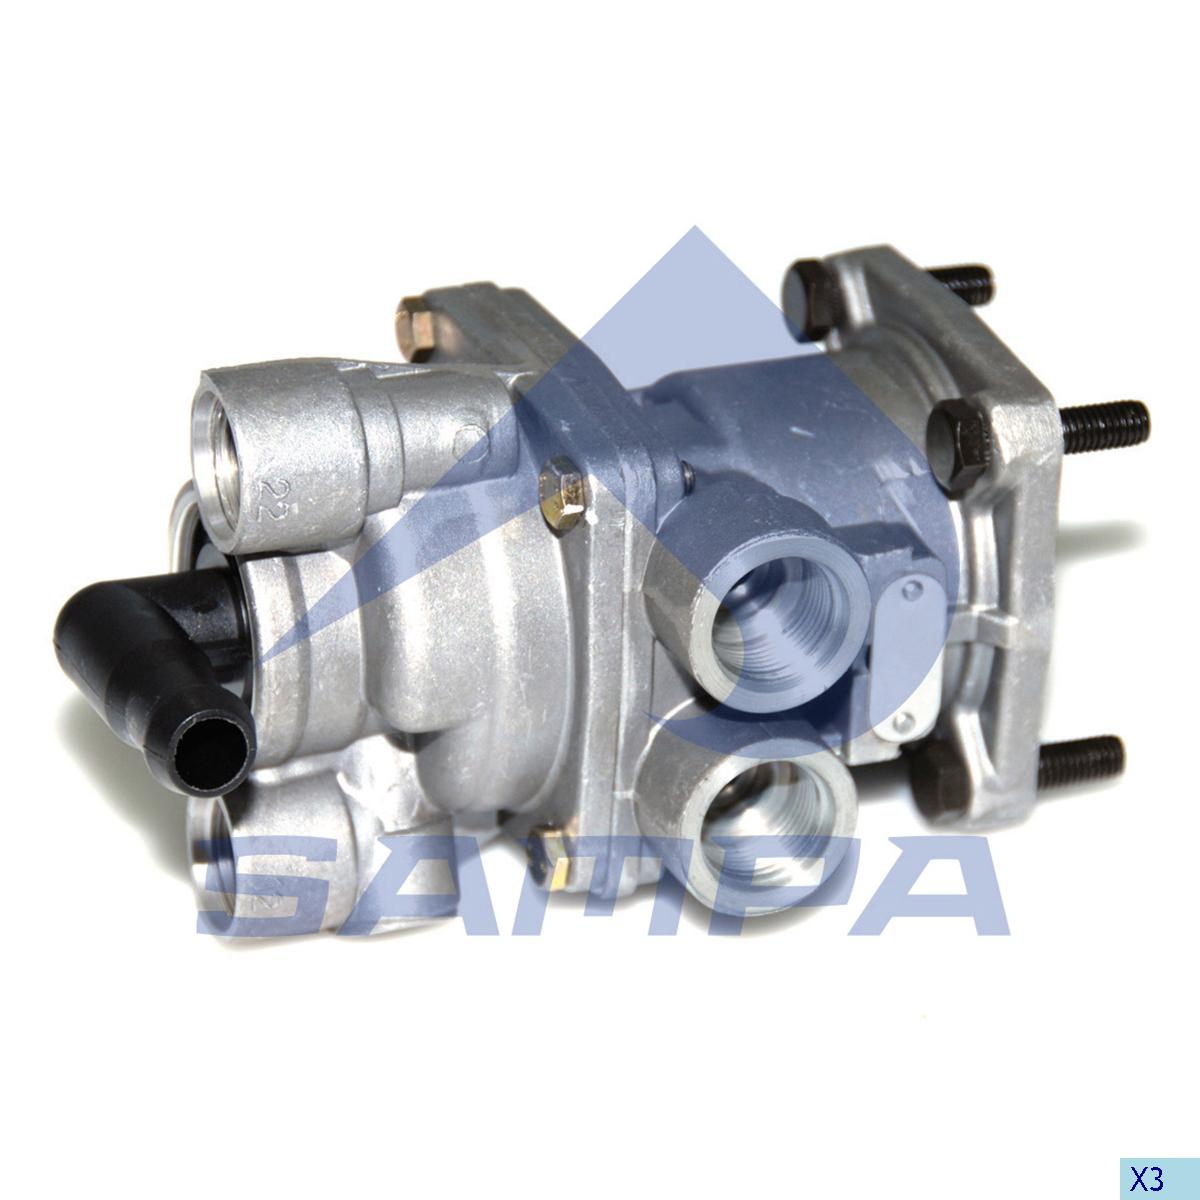 Foot Brake Valve, Daf, Compressed Air System